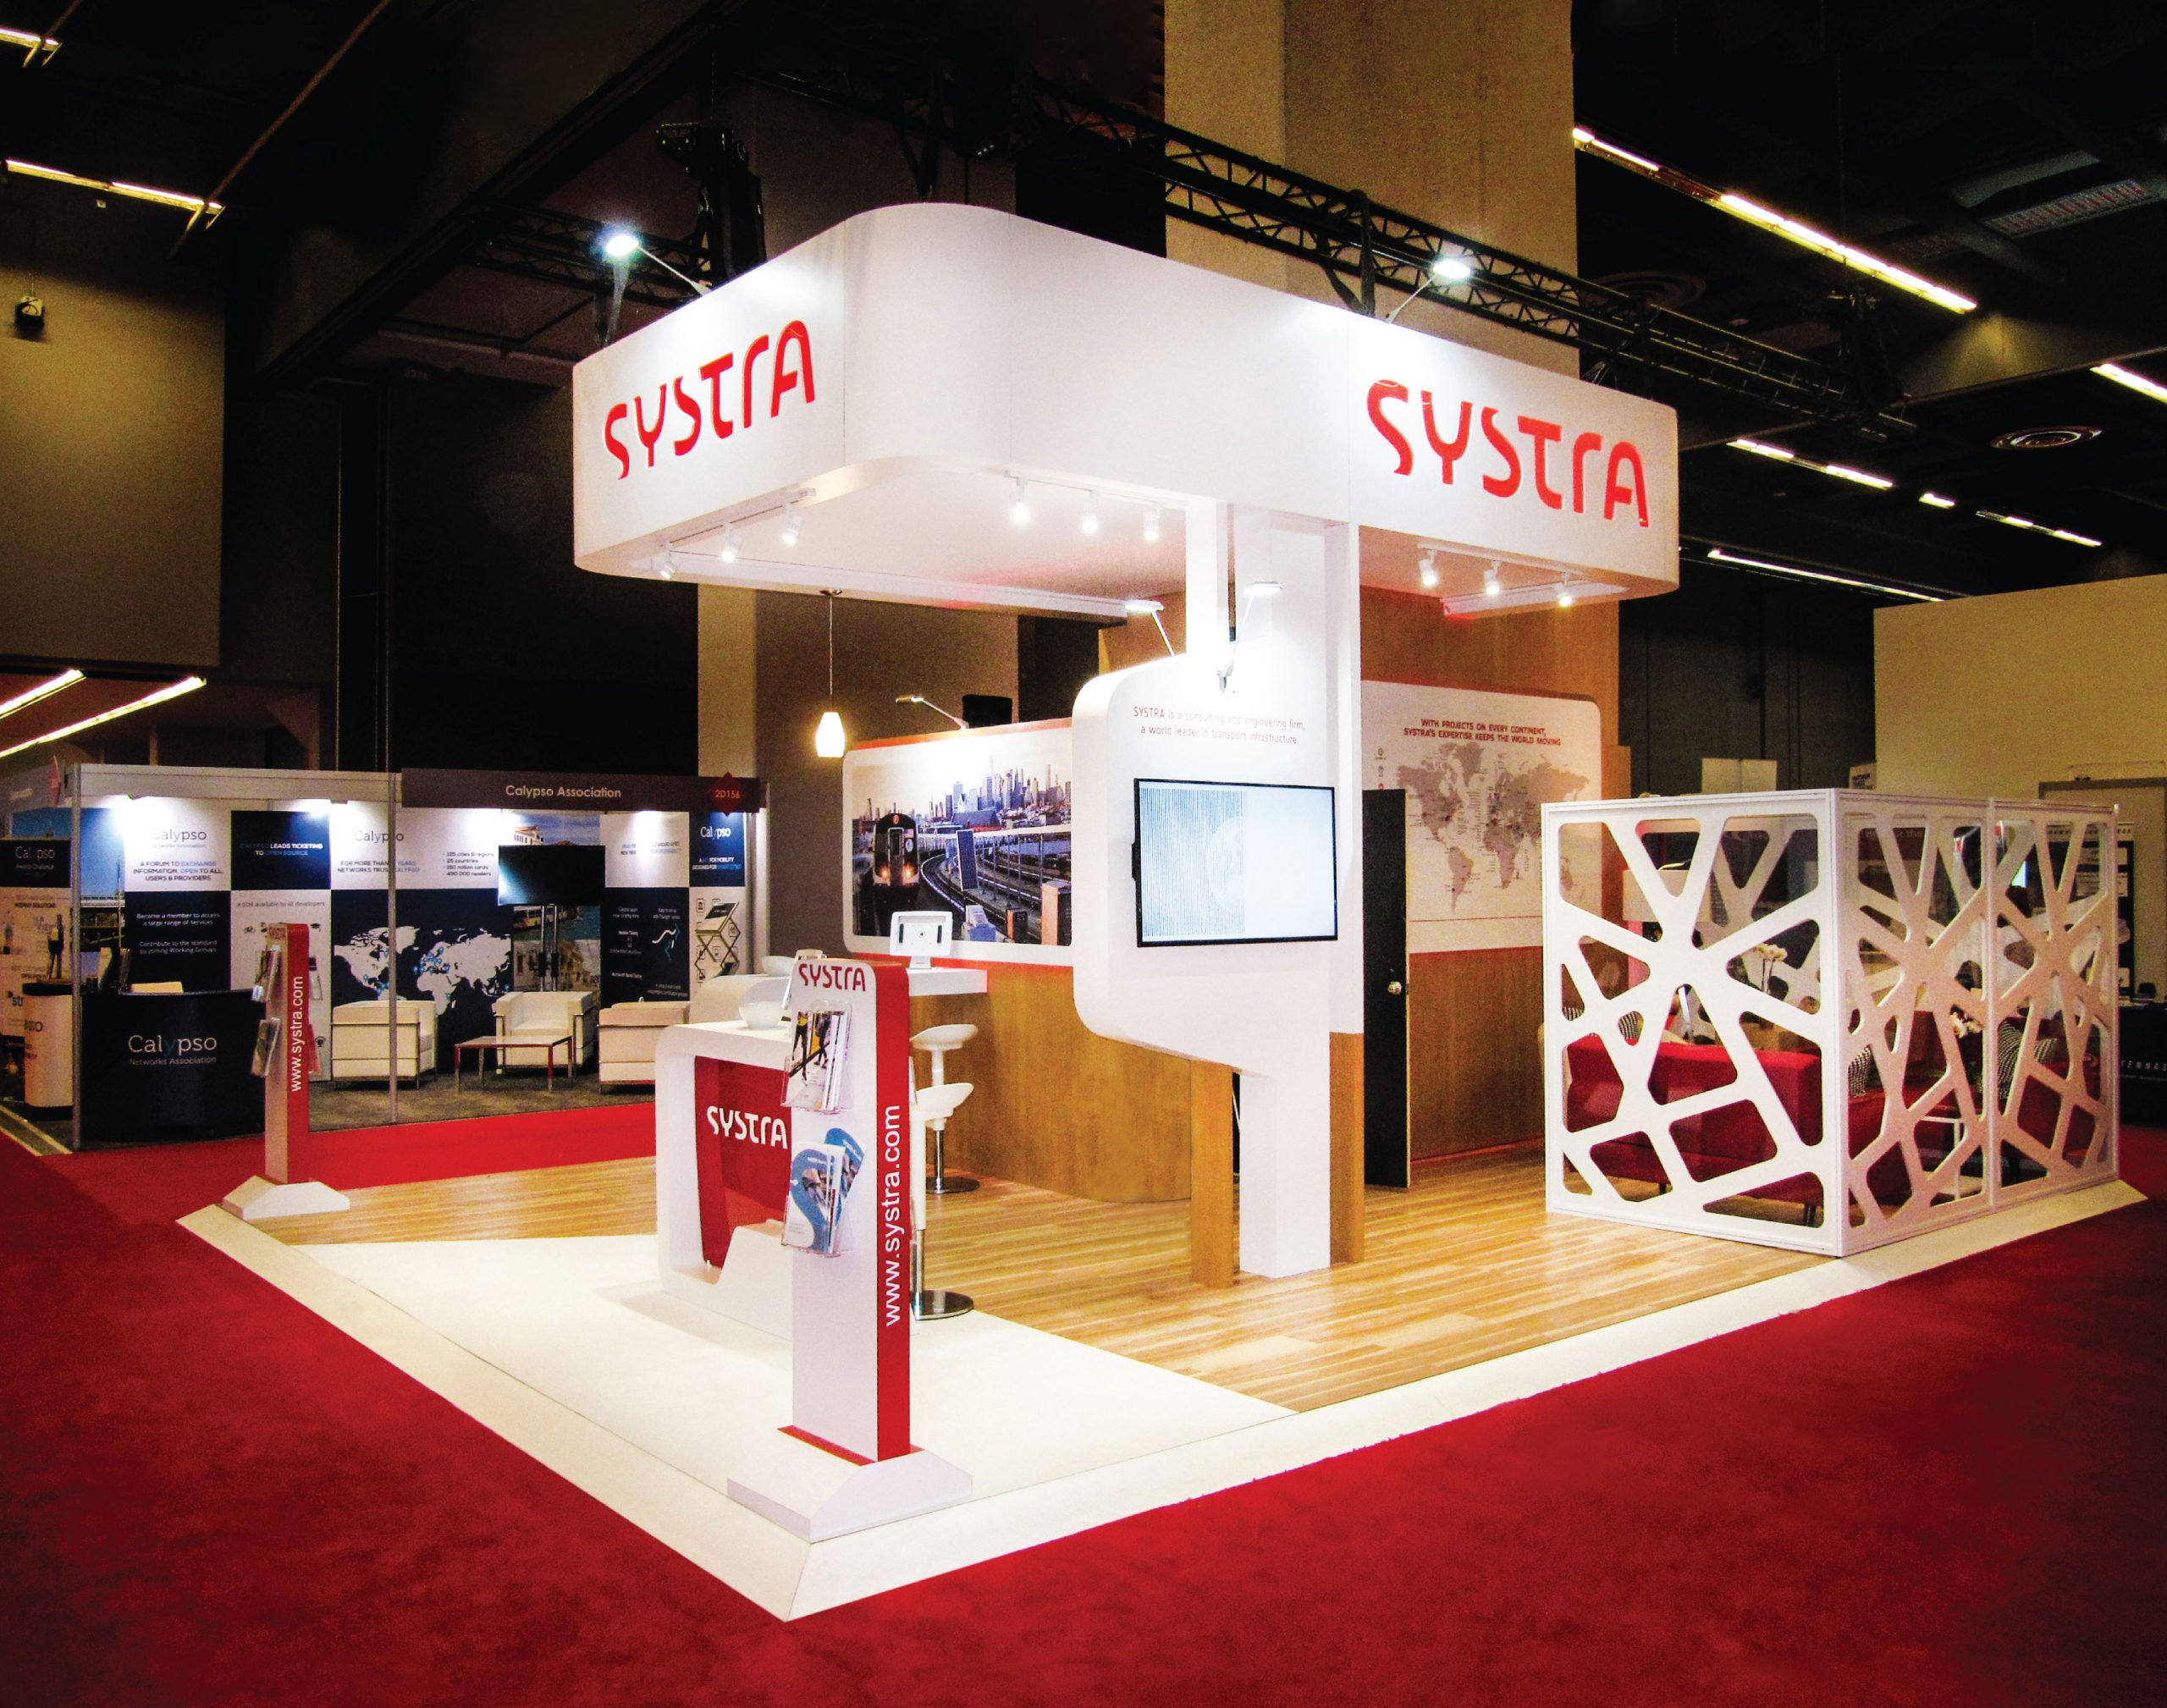 an image of the Systra activation, with a custom desk and fabricated wall